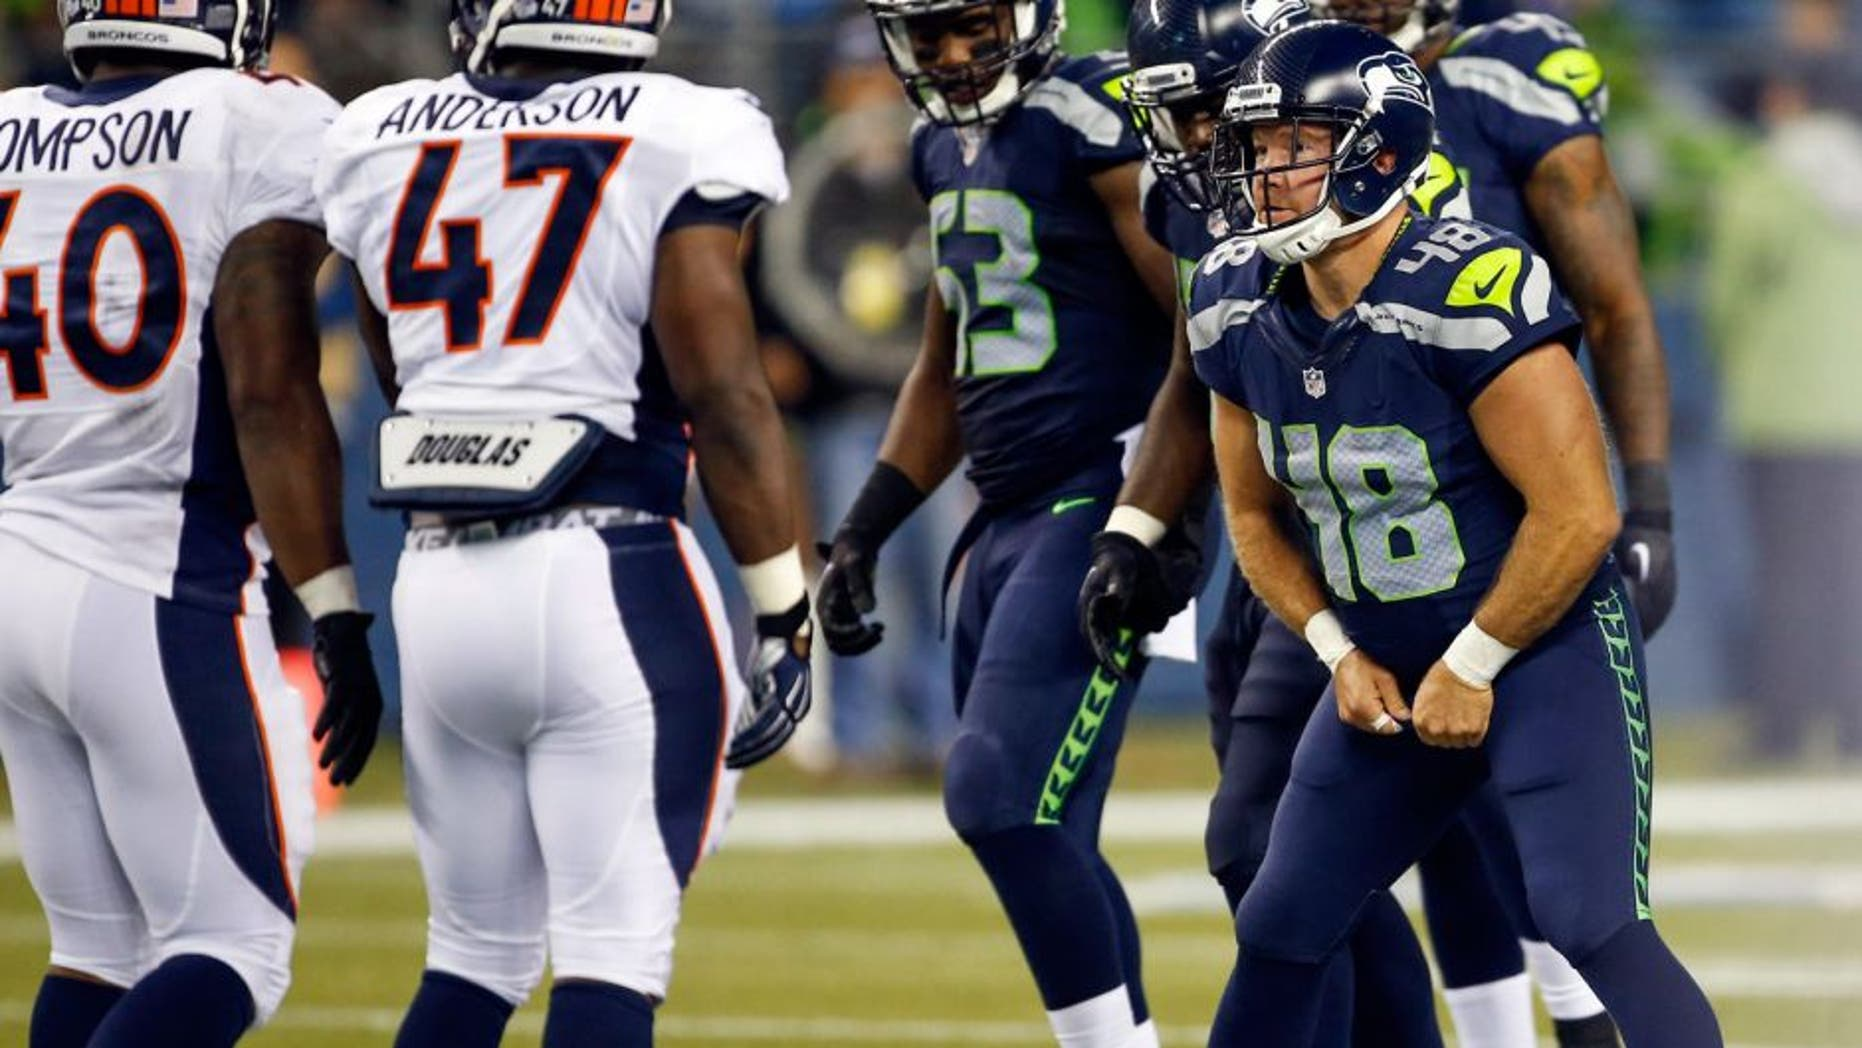 Aug 14, 2015; Seattle, WA, USA; Seattle Seahawks long snapper Nate Boyer (48) readies himself for a play against the Denver Broncos during the fourth quarter in a preseason NFL football game at CenturyLink Field. Mandatory Credit: Joe Nicholson-USA TODAY Sports